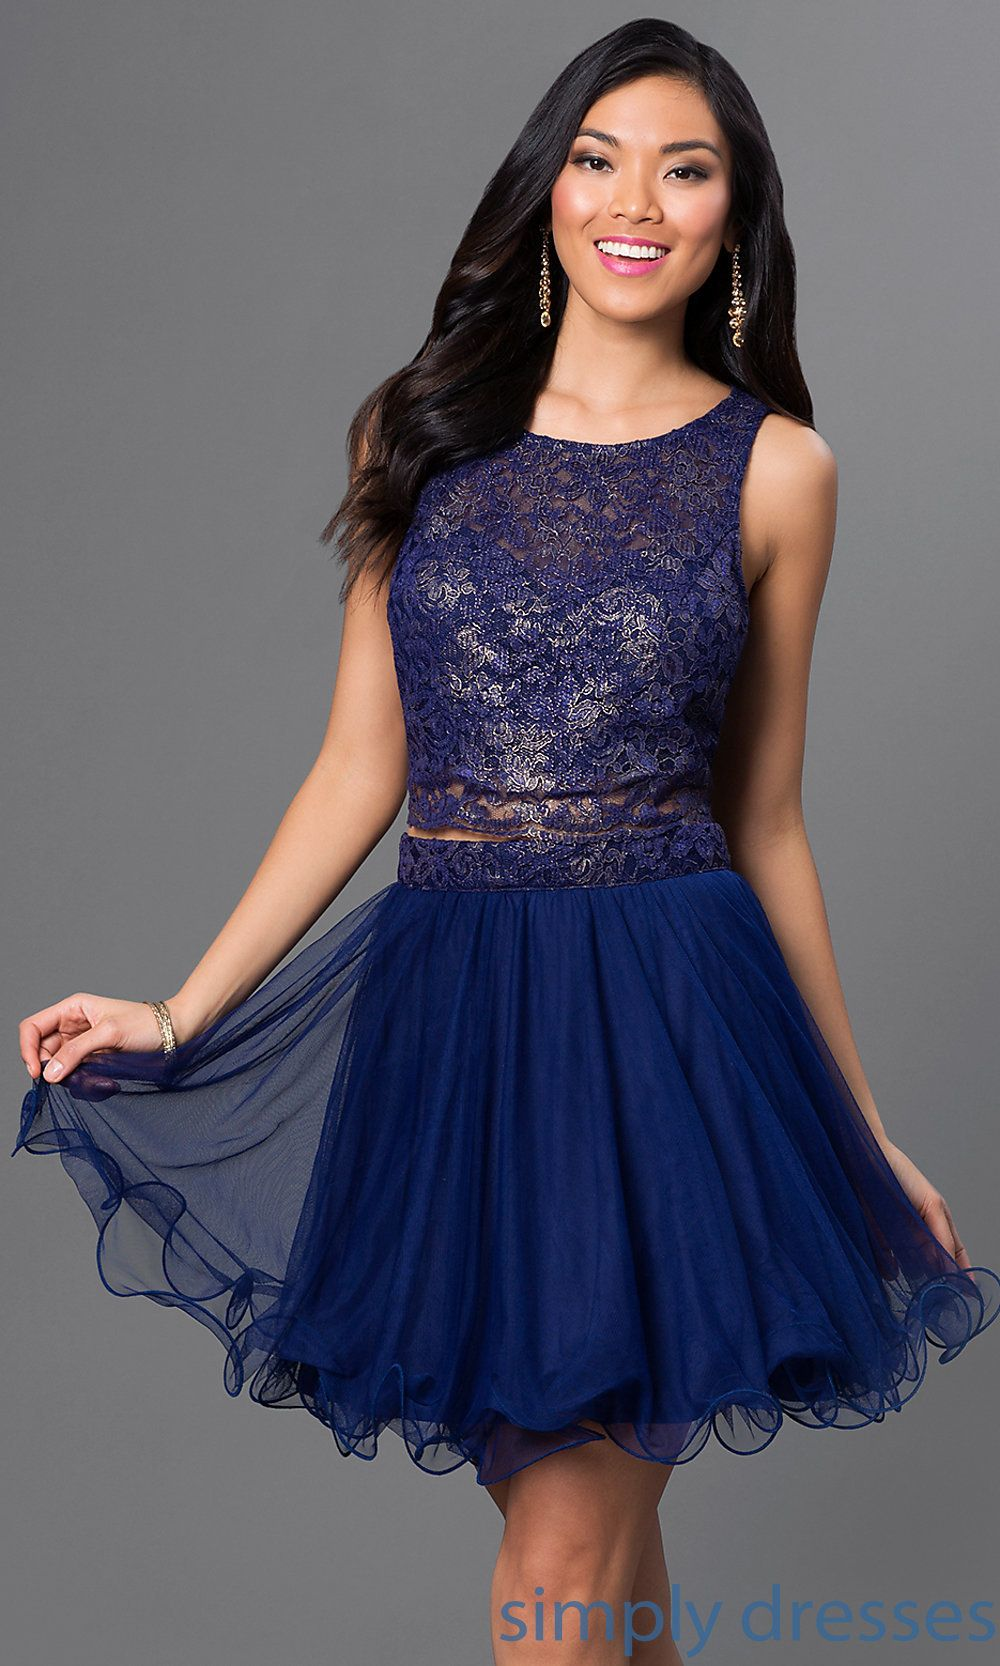 89bd4920aa Shop Simply Dresses for homecoming party dresses